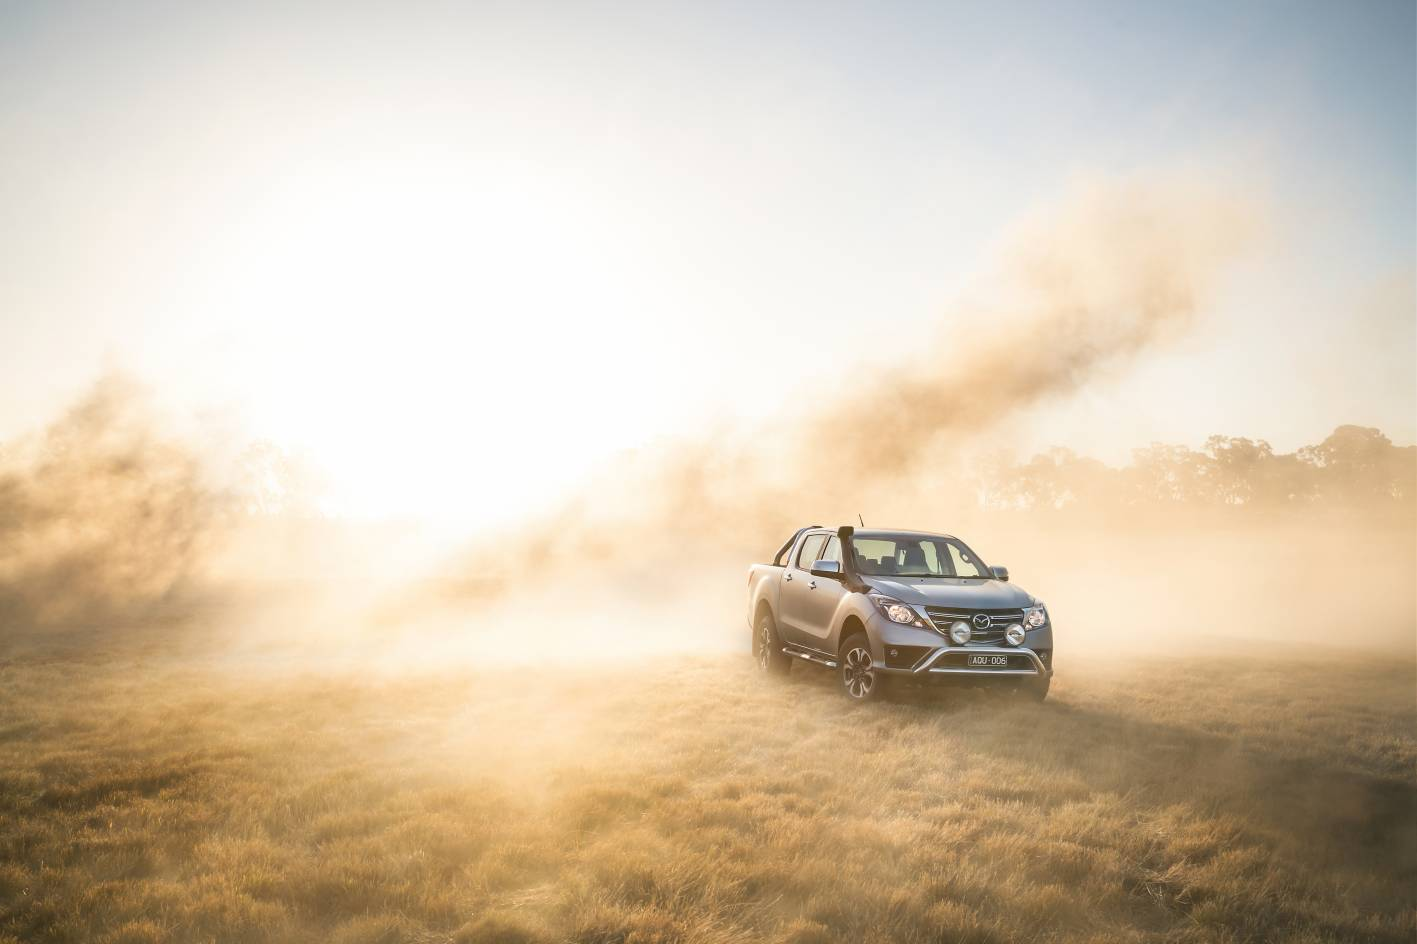 Mazda Bt 50 Review Buyers Guide Auto Expert By John Cadogan Saab 9 3 Radio Wiring Diagram Free Download 2018 02